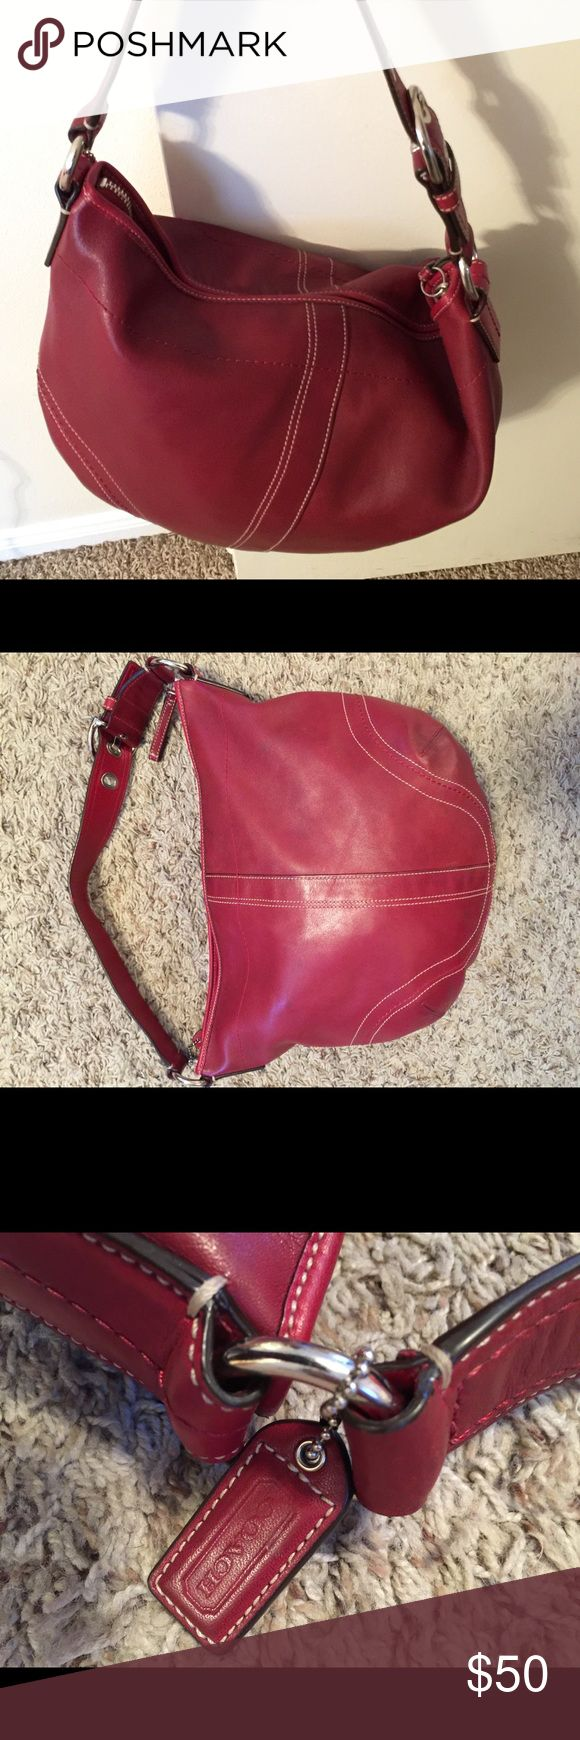 Coach hand bag red leather hobo Coach hand bag red leather hobo Coach Bags Hobos